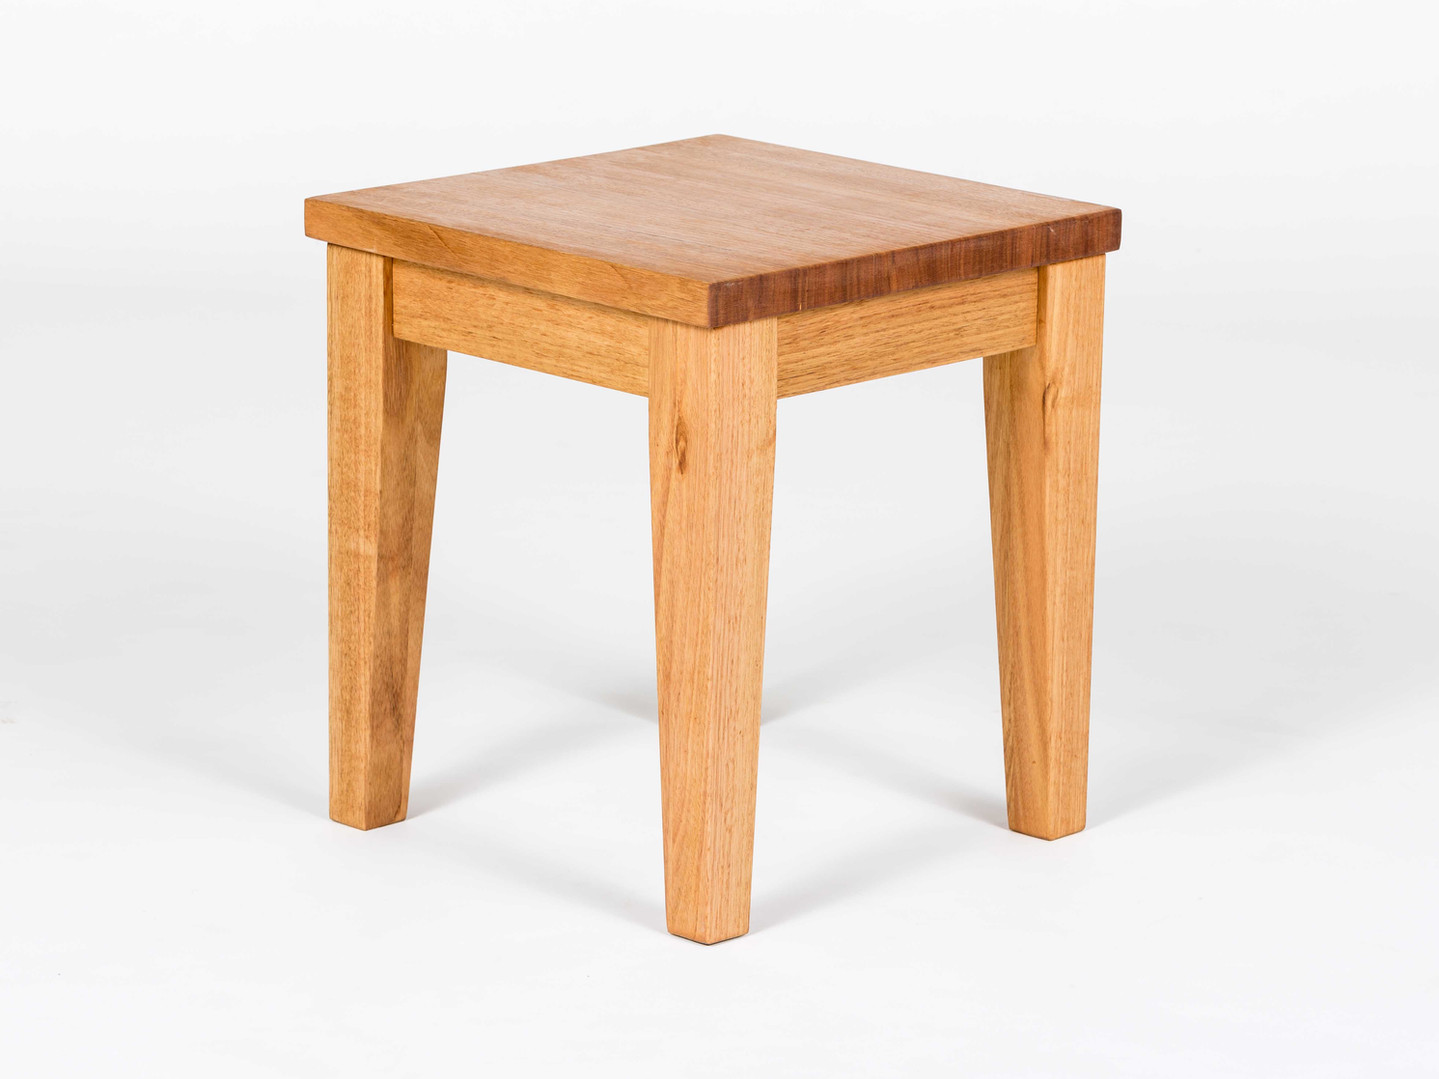 SIDE_TABLE_ONE_SMALL_ROOM.jpg